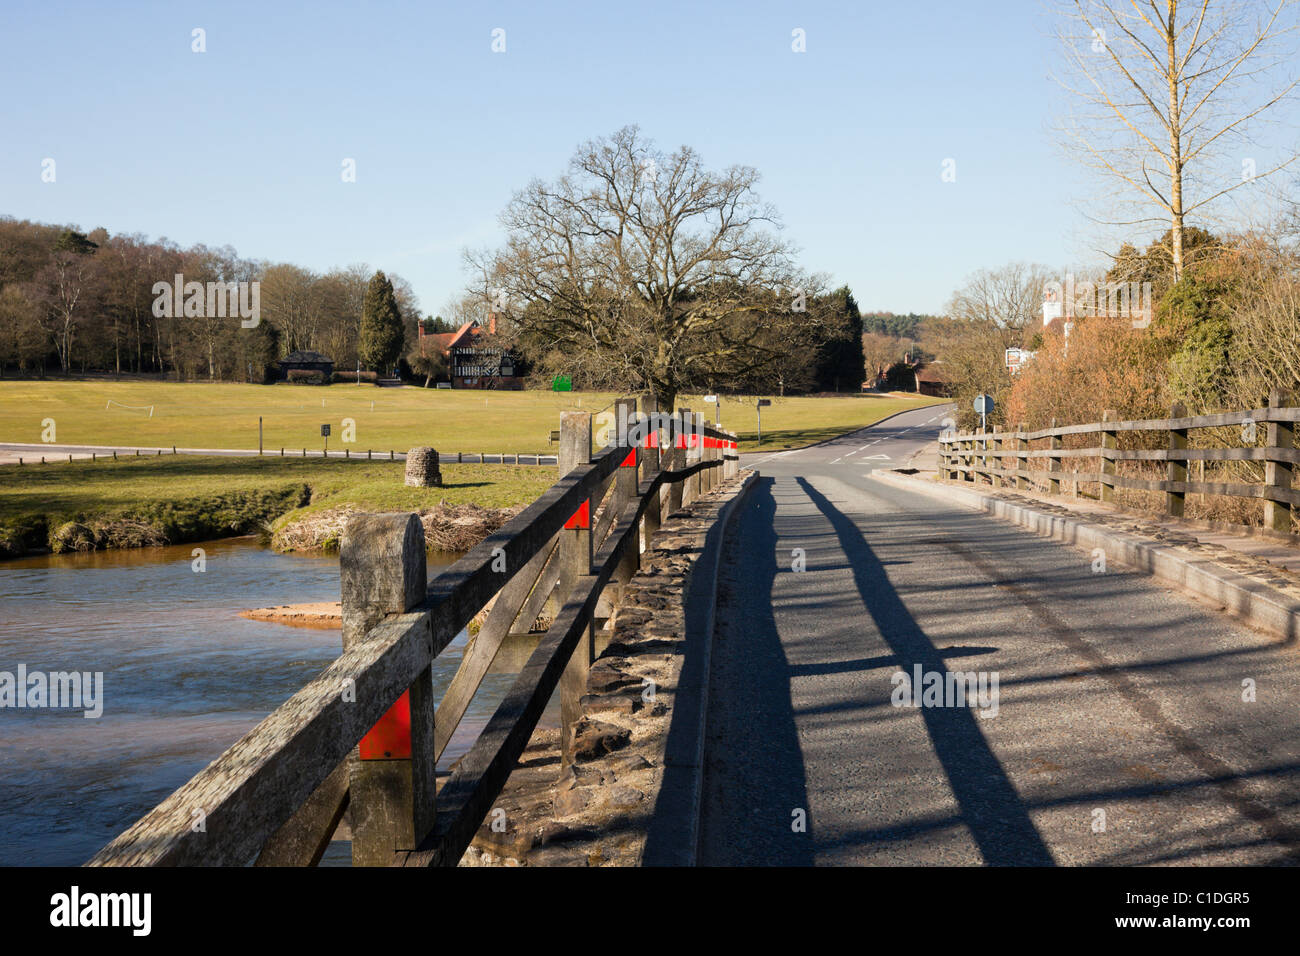 Tilford, Surrey, England, UK. View to village green along the narrow bridge across the River Wey. - Stock Image